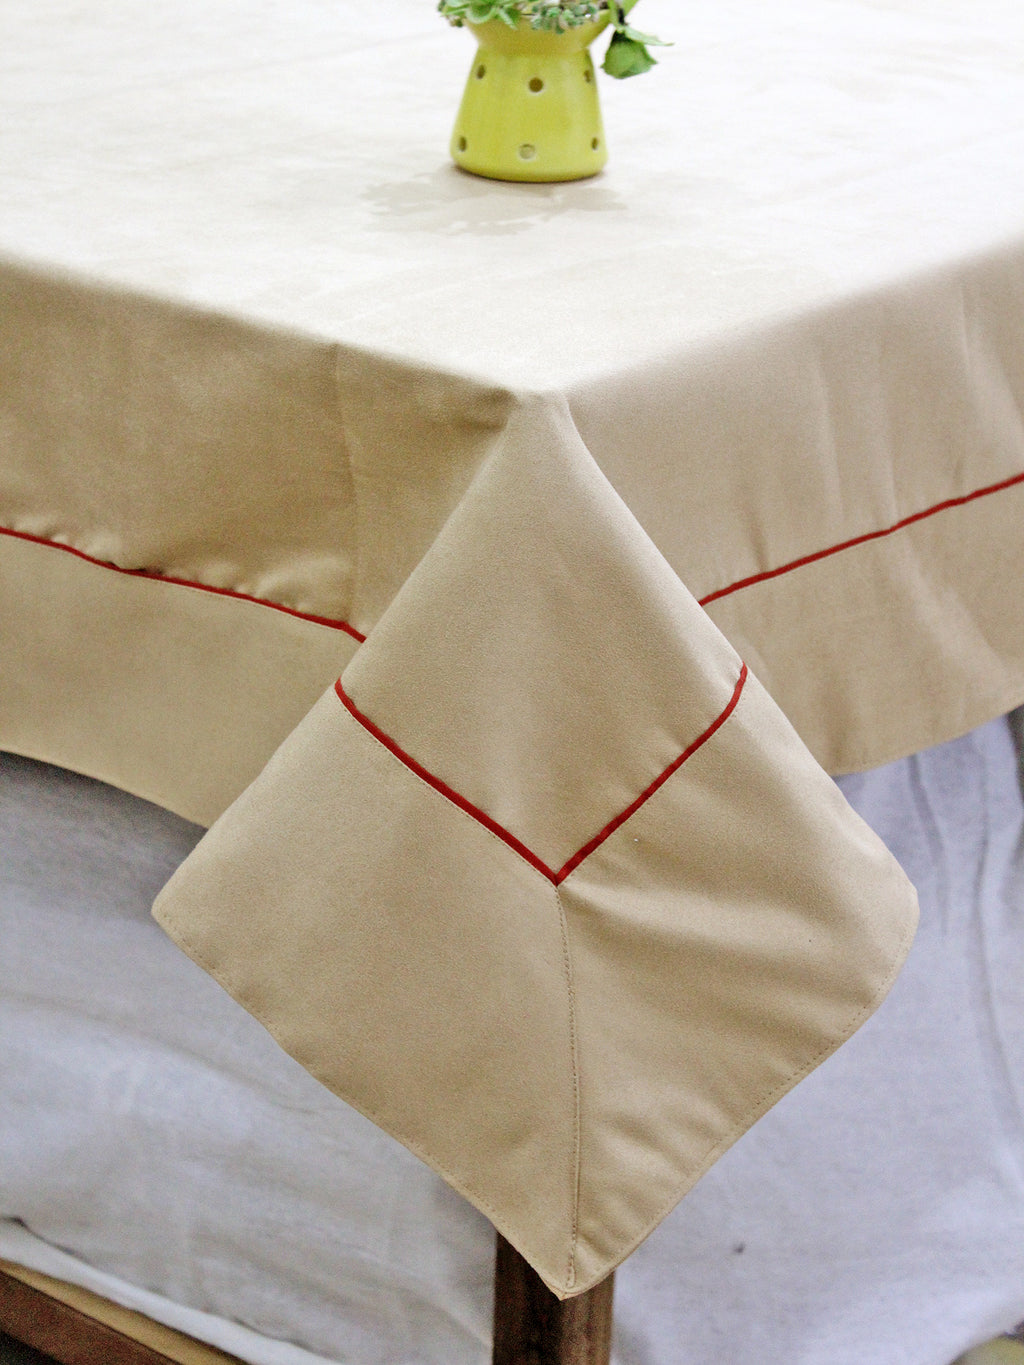 AURAVE Suede Microfibre Solid Plain Polyester Table Cloth - TAN